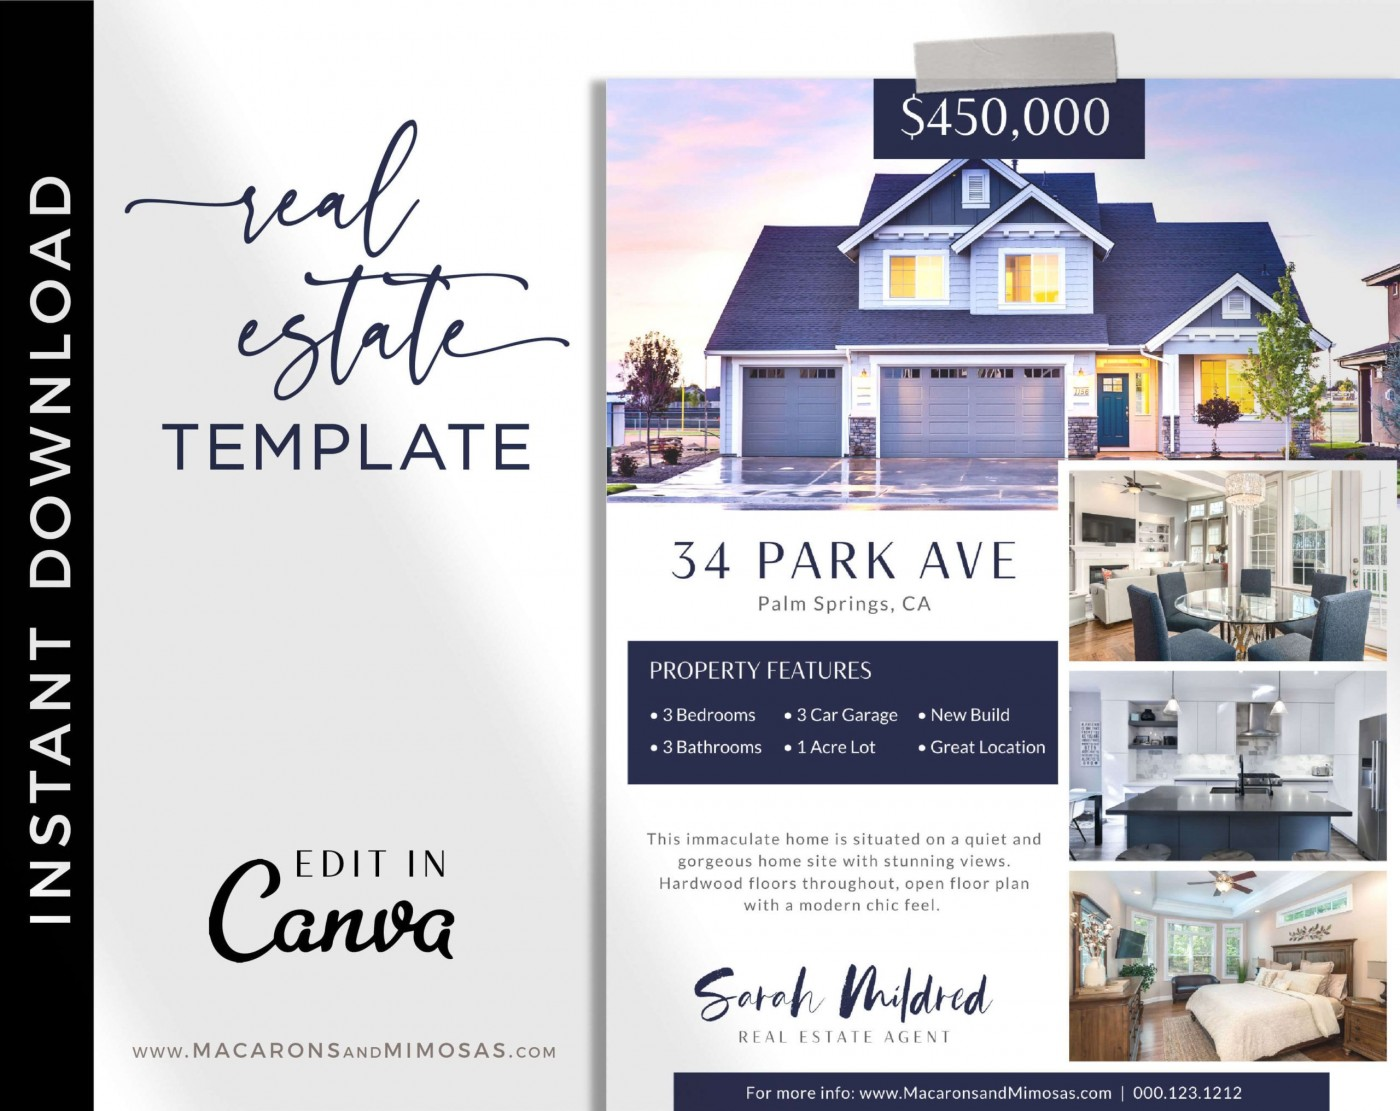 005 Beautiful House For Sale Flyer Template Sample  Free Real Estate Example By Owner1400